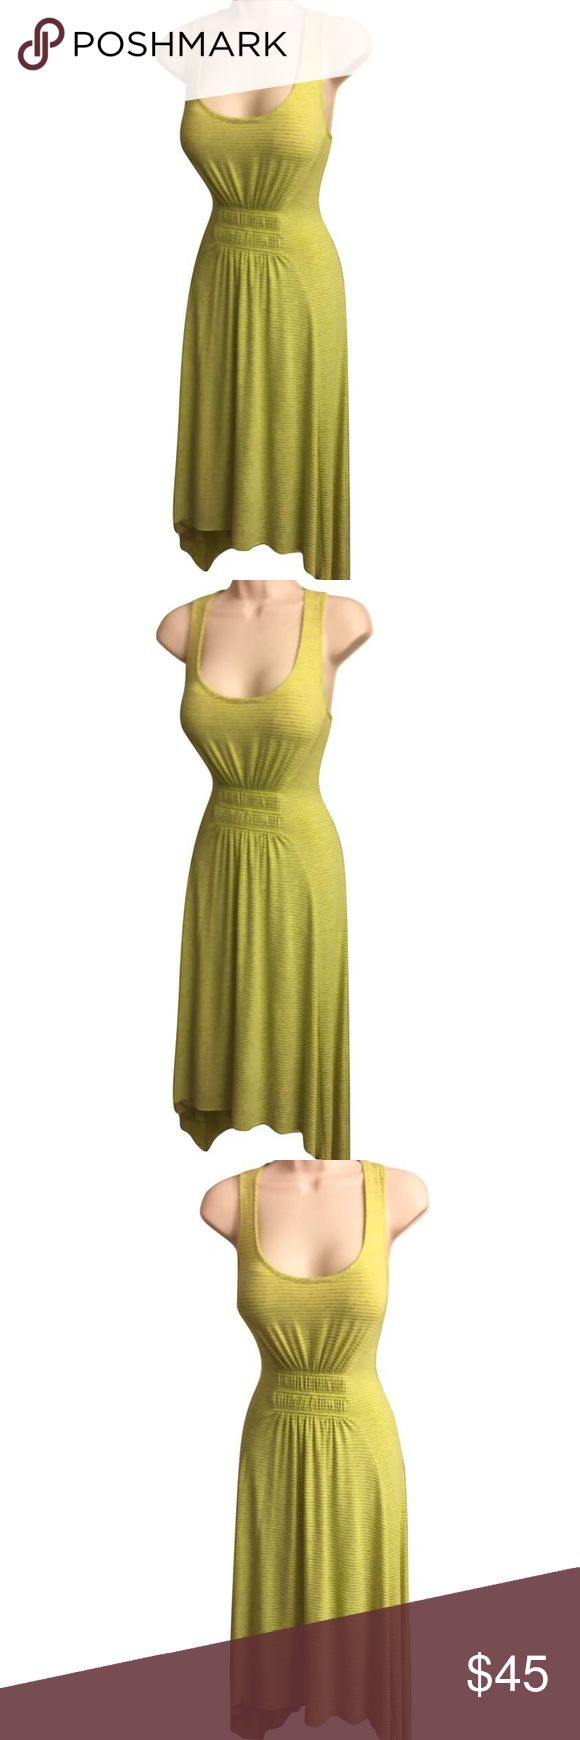 "Asymmetric Green Striped People Like Frank Dress This sleeveless, bright green-yellow & grey striped, asymmetrical People Like Frank dress from Anthropologie is super soft, comfy & light- perfect for summer! Extremely versatile. W/a scoop neckline & racerback, matching elastic panels above waist on front/back of dress define shape of dress, flattering curves. Length: 39"" in front, 47"" at sides. Measurements of dress laid flat: Bust: 16"", Waist: 12"". Dress is designed to stretch. 48%rayon/48%…"